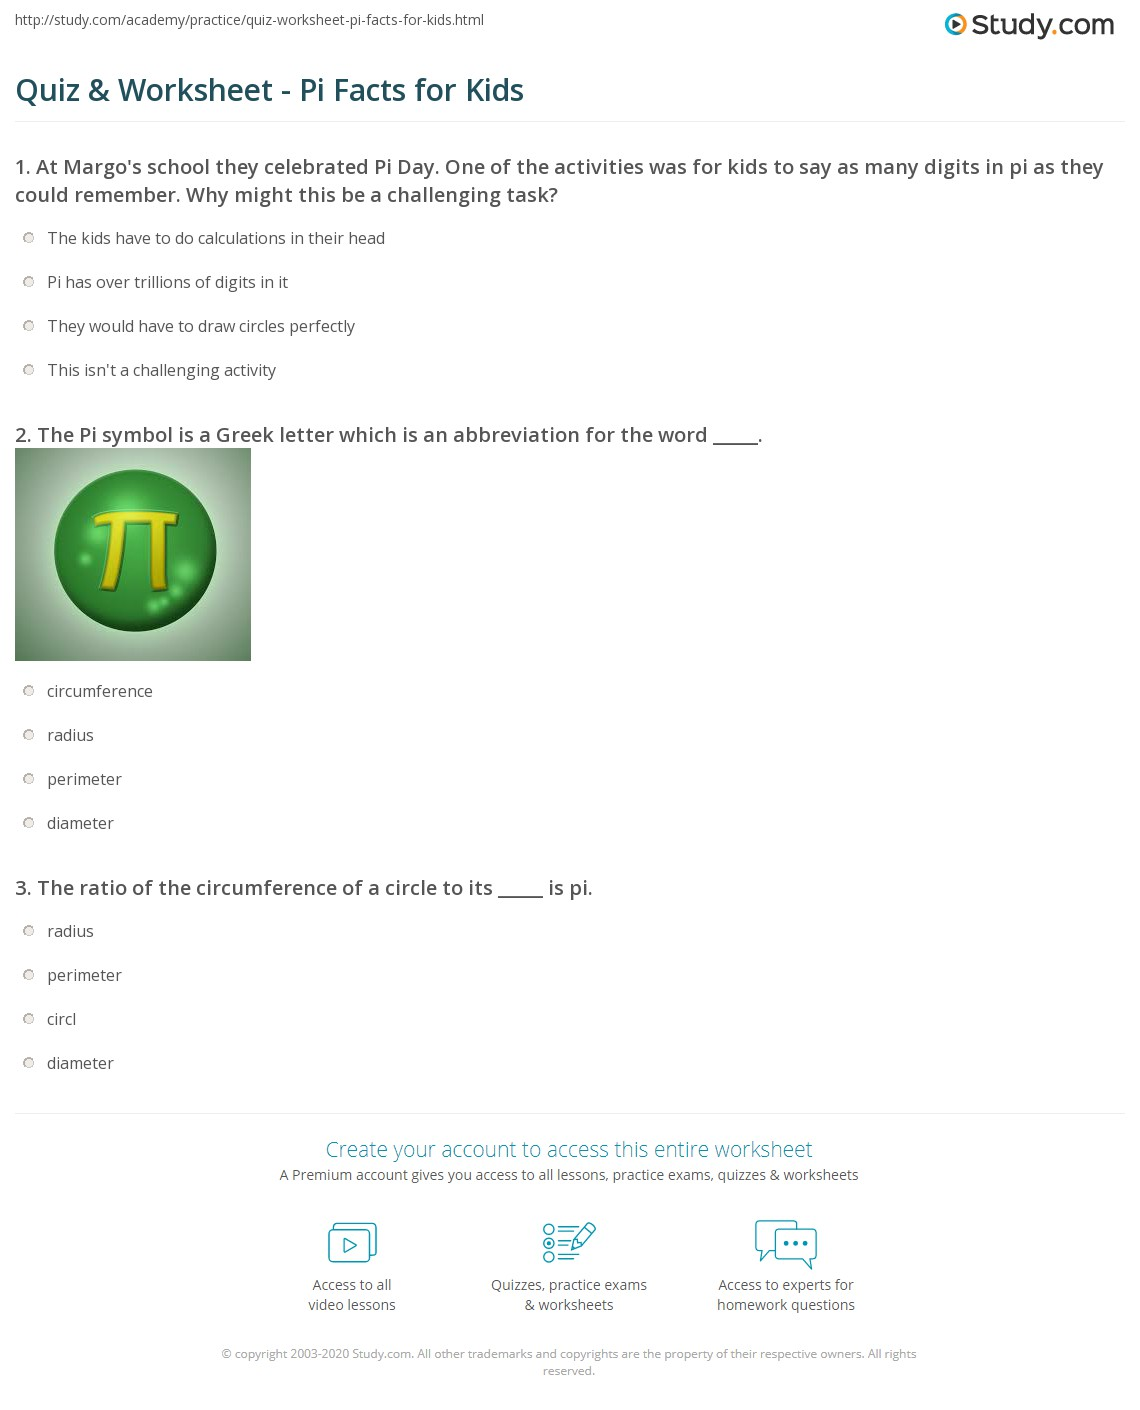 Quiz Worksheet Pi Facts For Kids Study